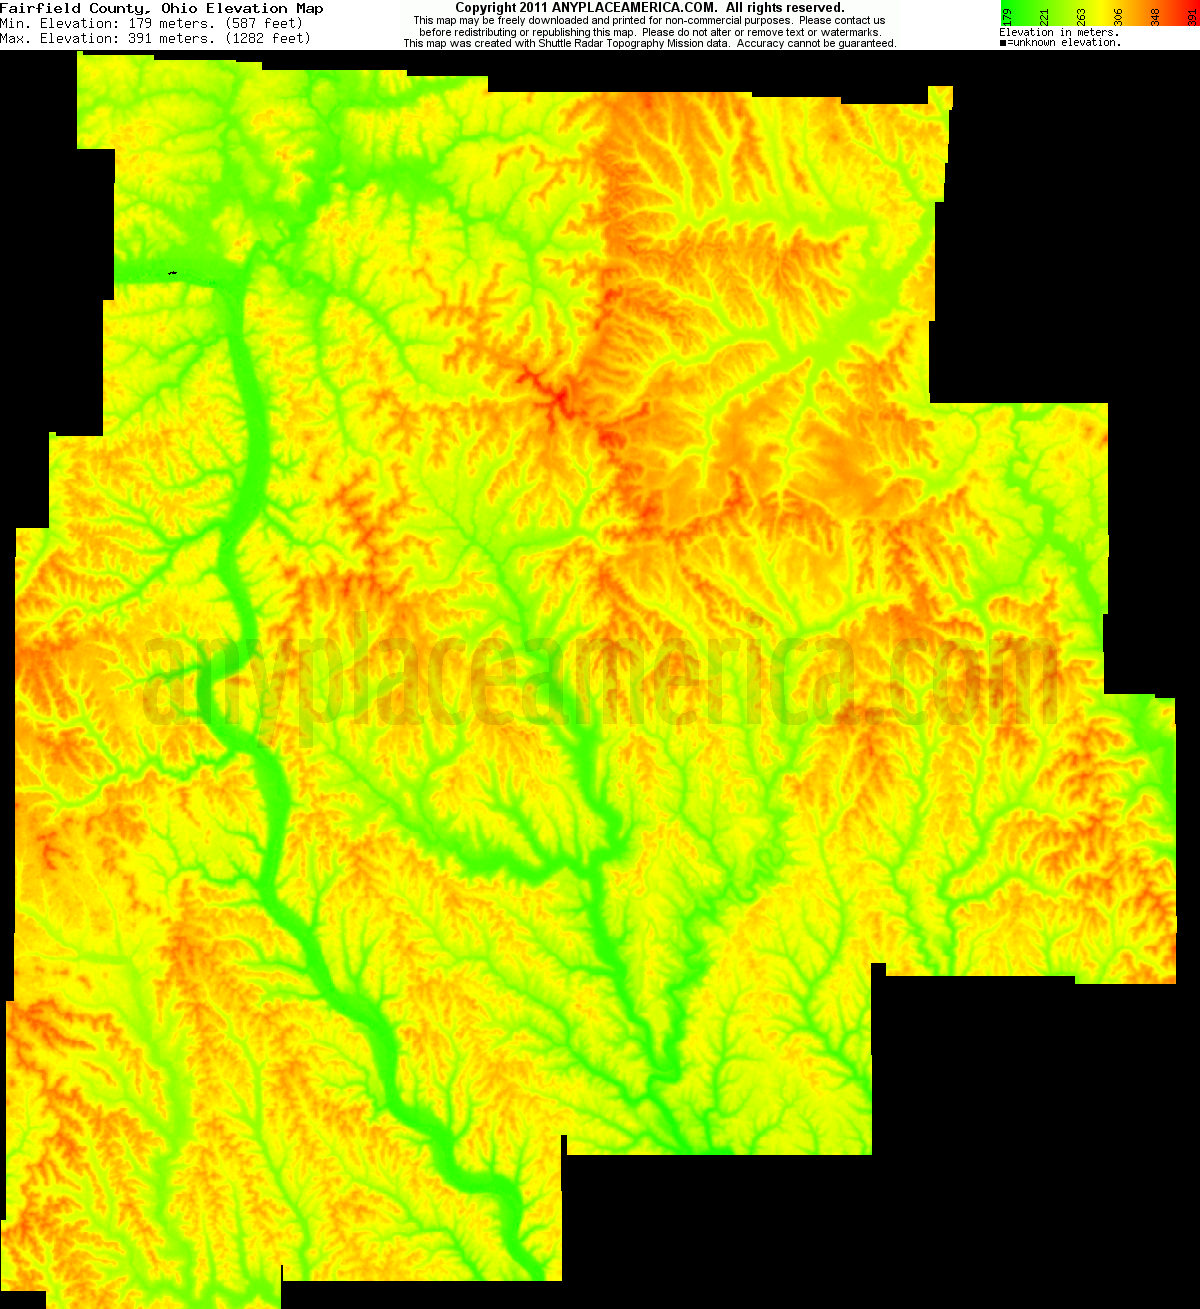 Topography Map Of Ohio.Free Fairfield County Ohio Topo Maps Elevations